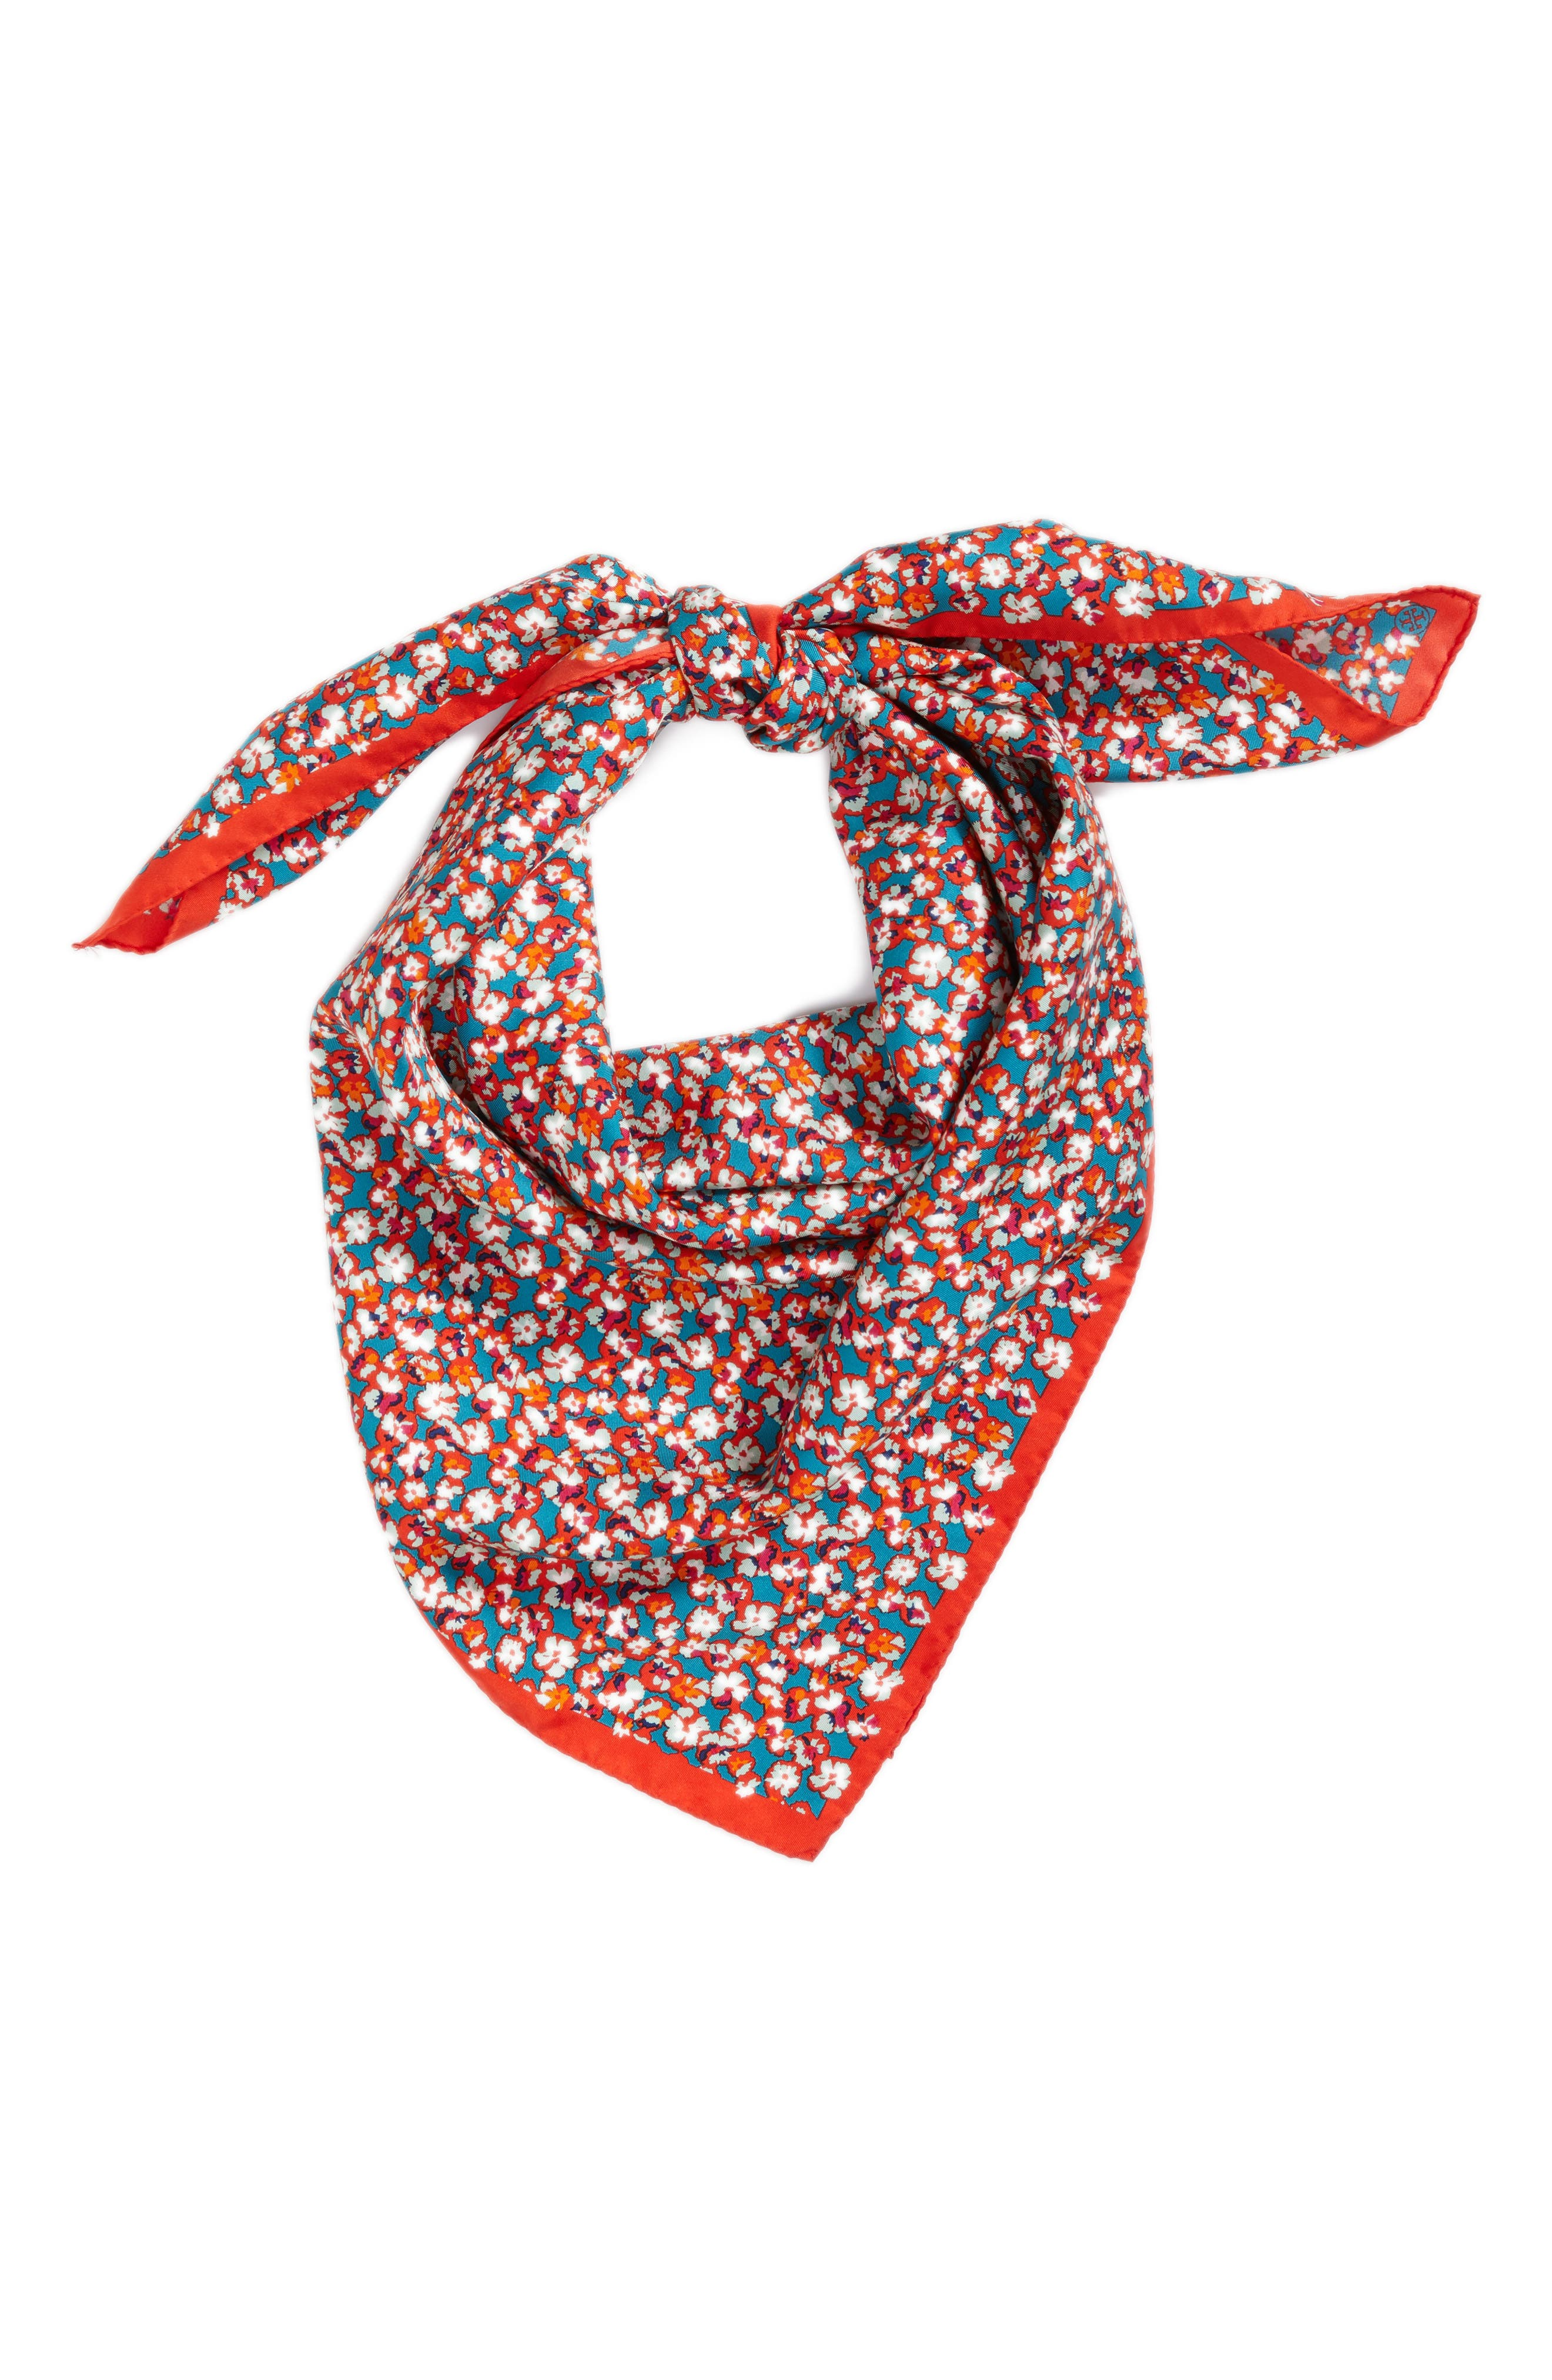 Carnation Silk Square Scarf,                             Alternate thumbnail 2, color,                             600